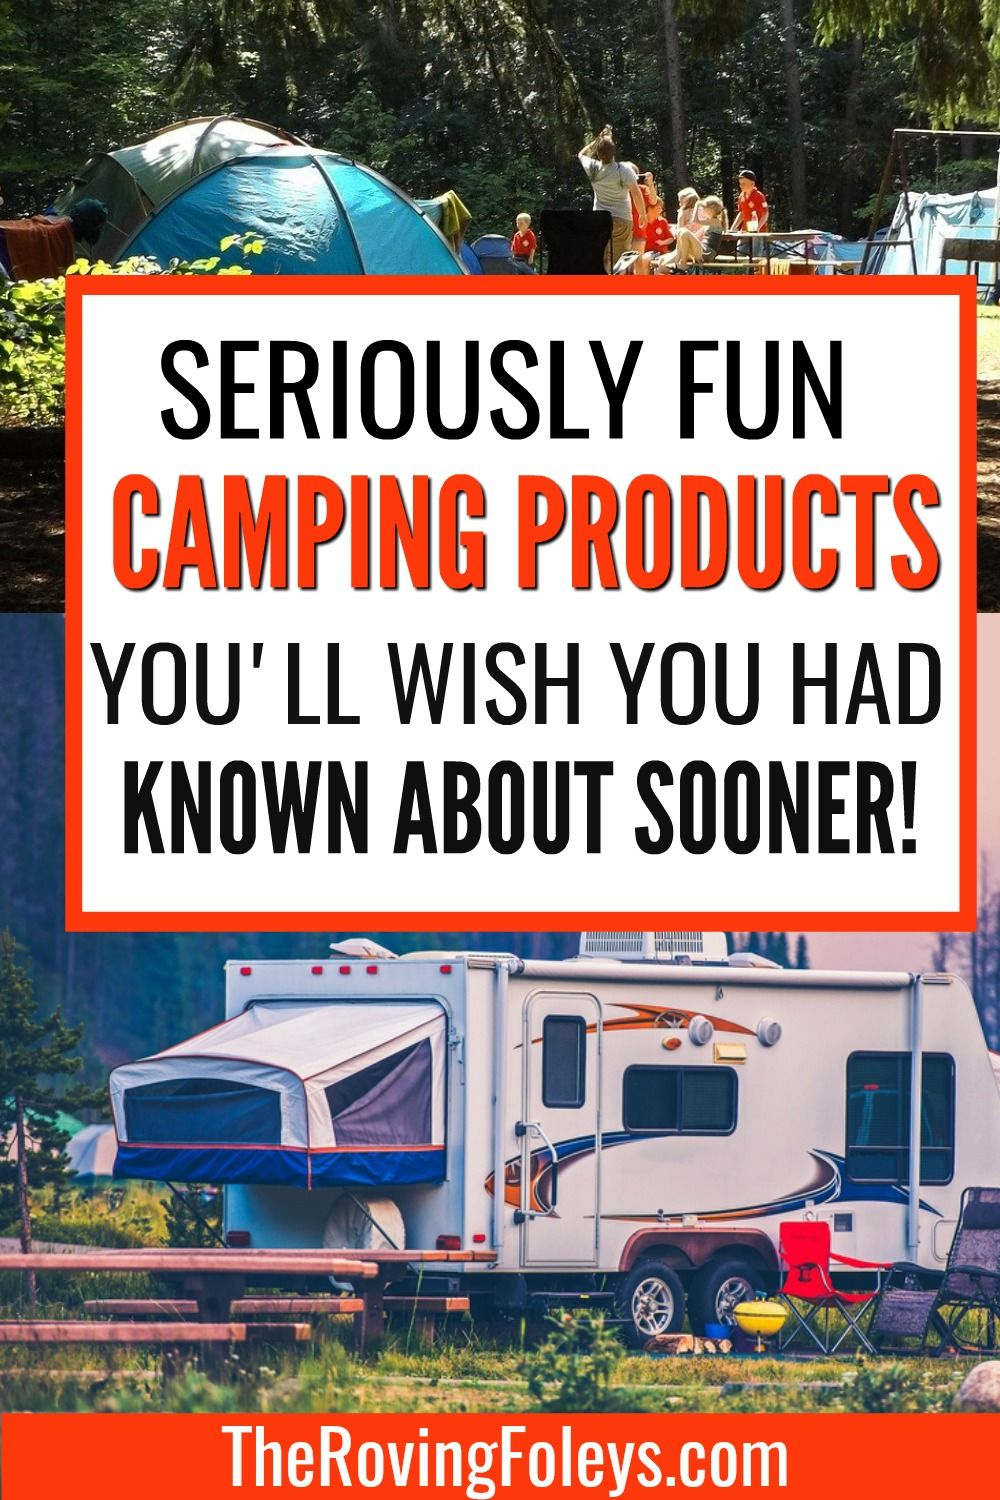 16 Fun Rv Accessories You Ll Need In 2021 Rv Accessories Camping Fun What To Bring Camping